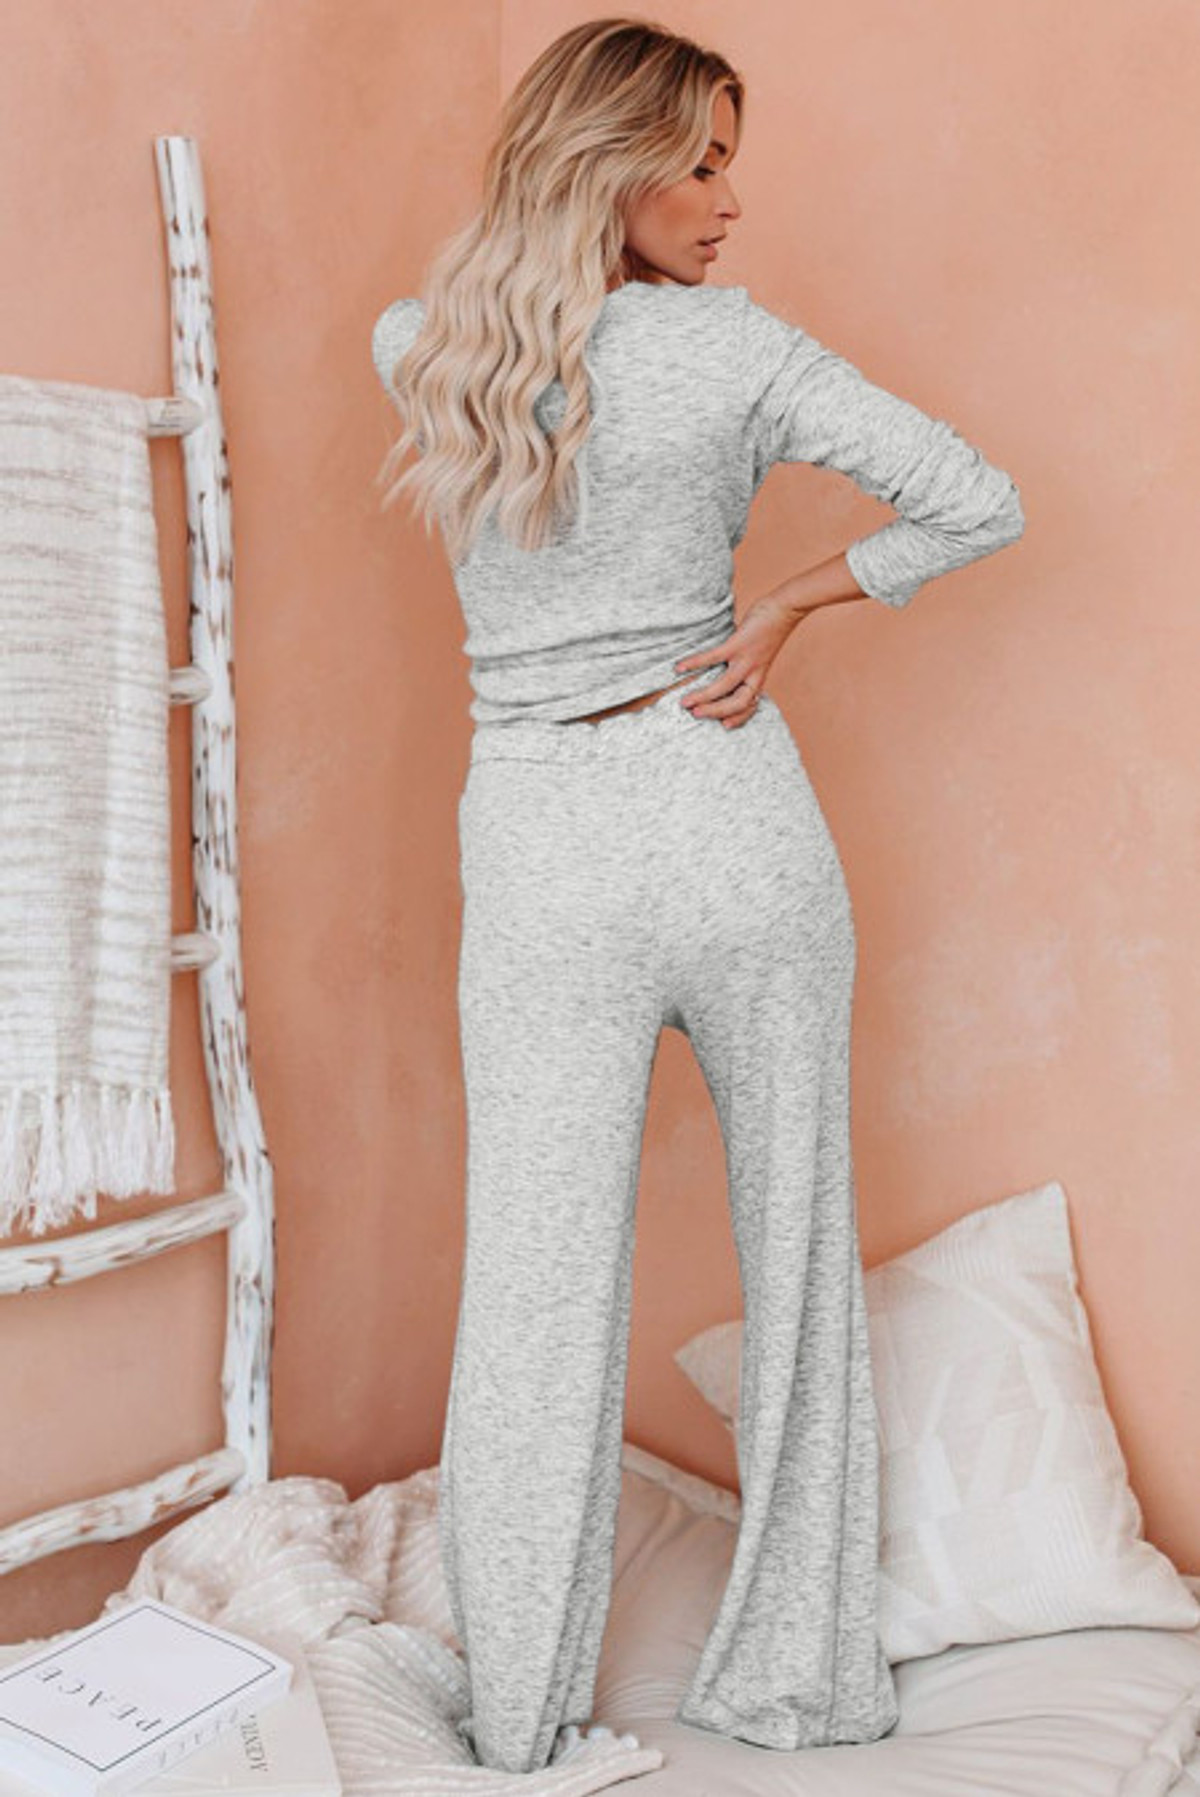 Comfy Cotton Lounge Top and Pant Set (FRE45066-11)  FRE4506611G2XL